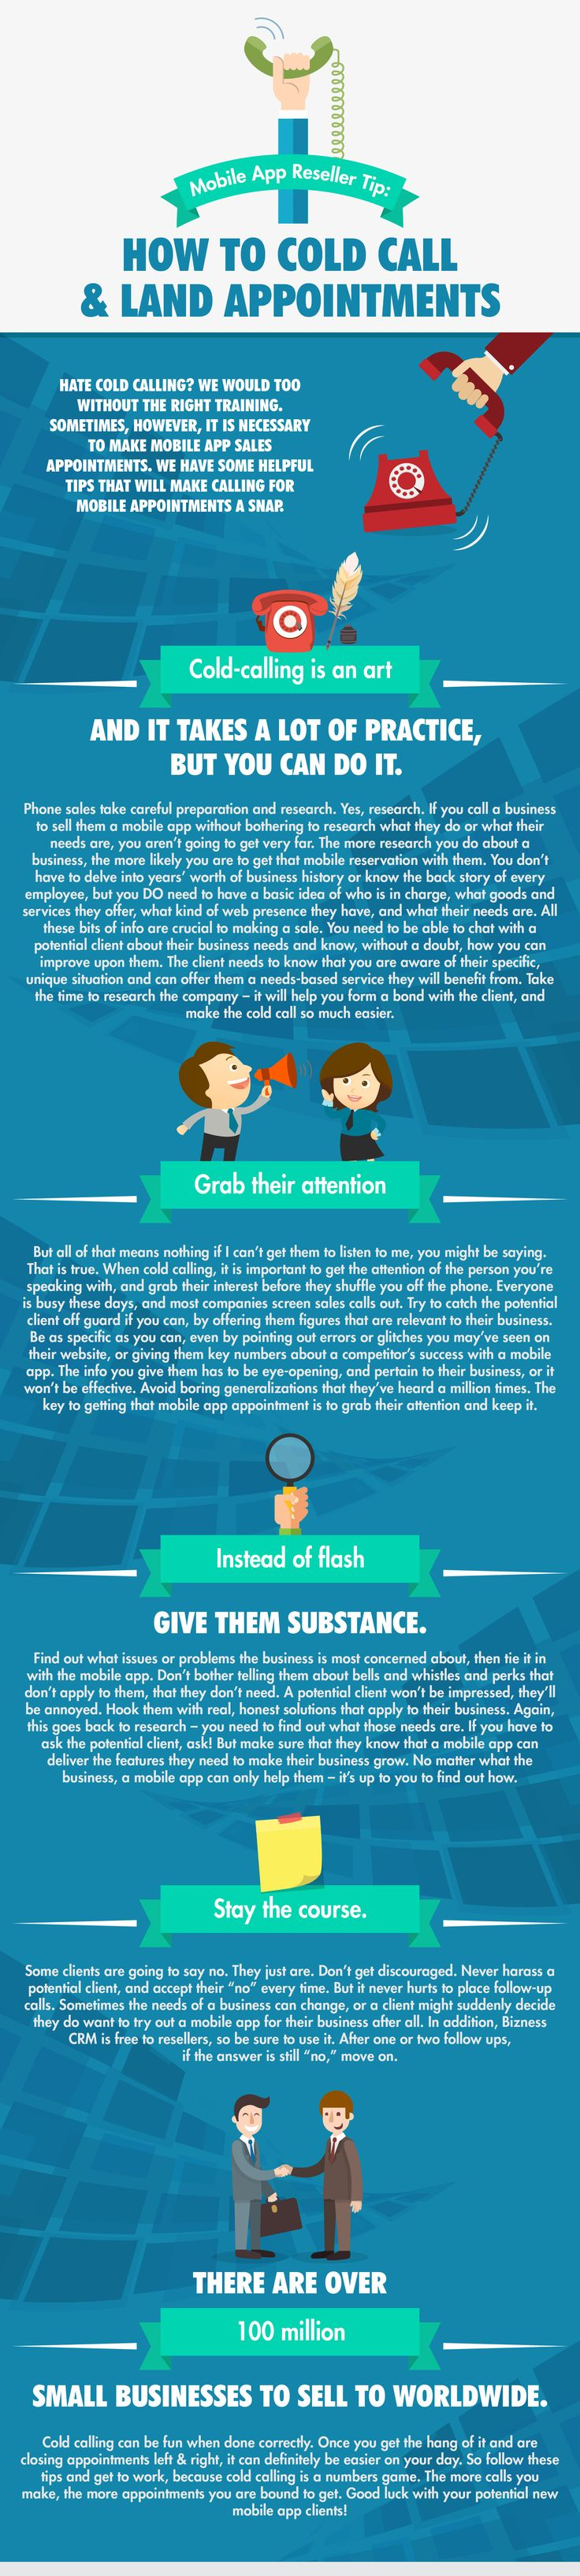 best ideas about cold calling s tips s how to cold call and land appointments infographic blog bizness apps